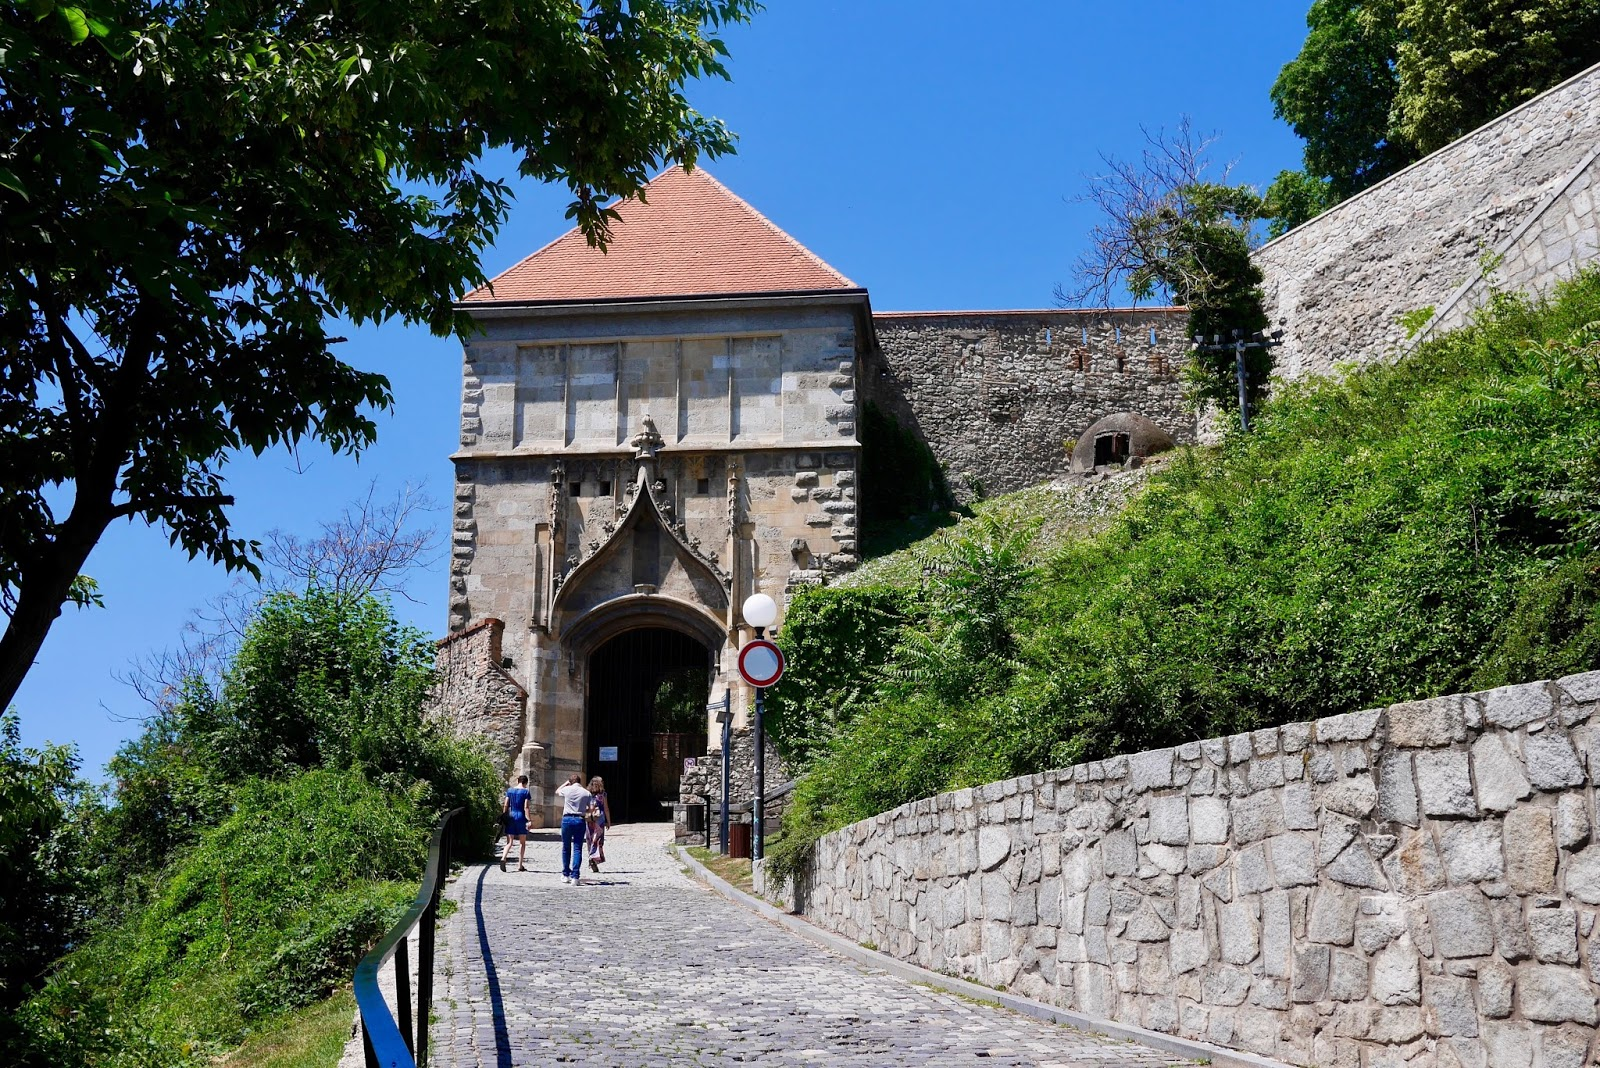 Bratislava castle entrance, steep hill but incredible views in Bratislava from www.calmctravels.com or CalMcTravels.com